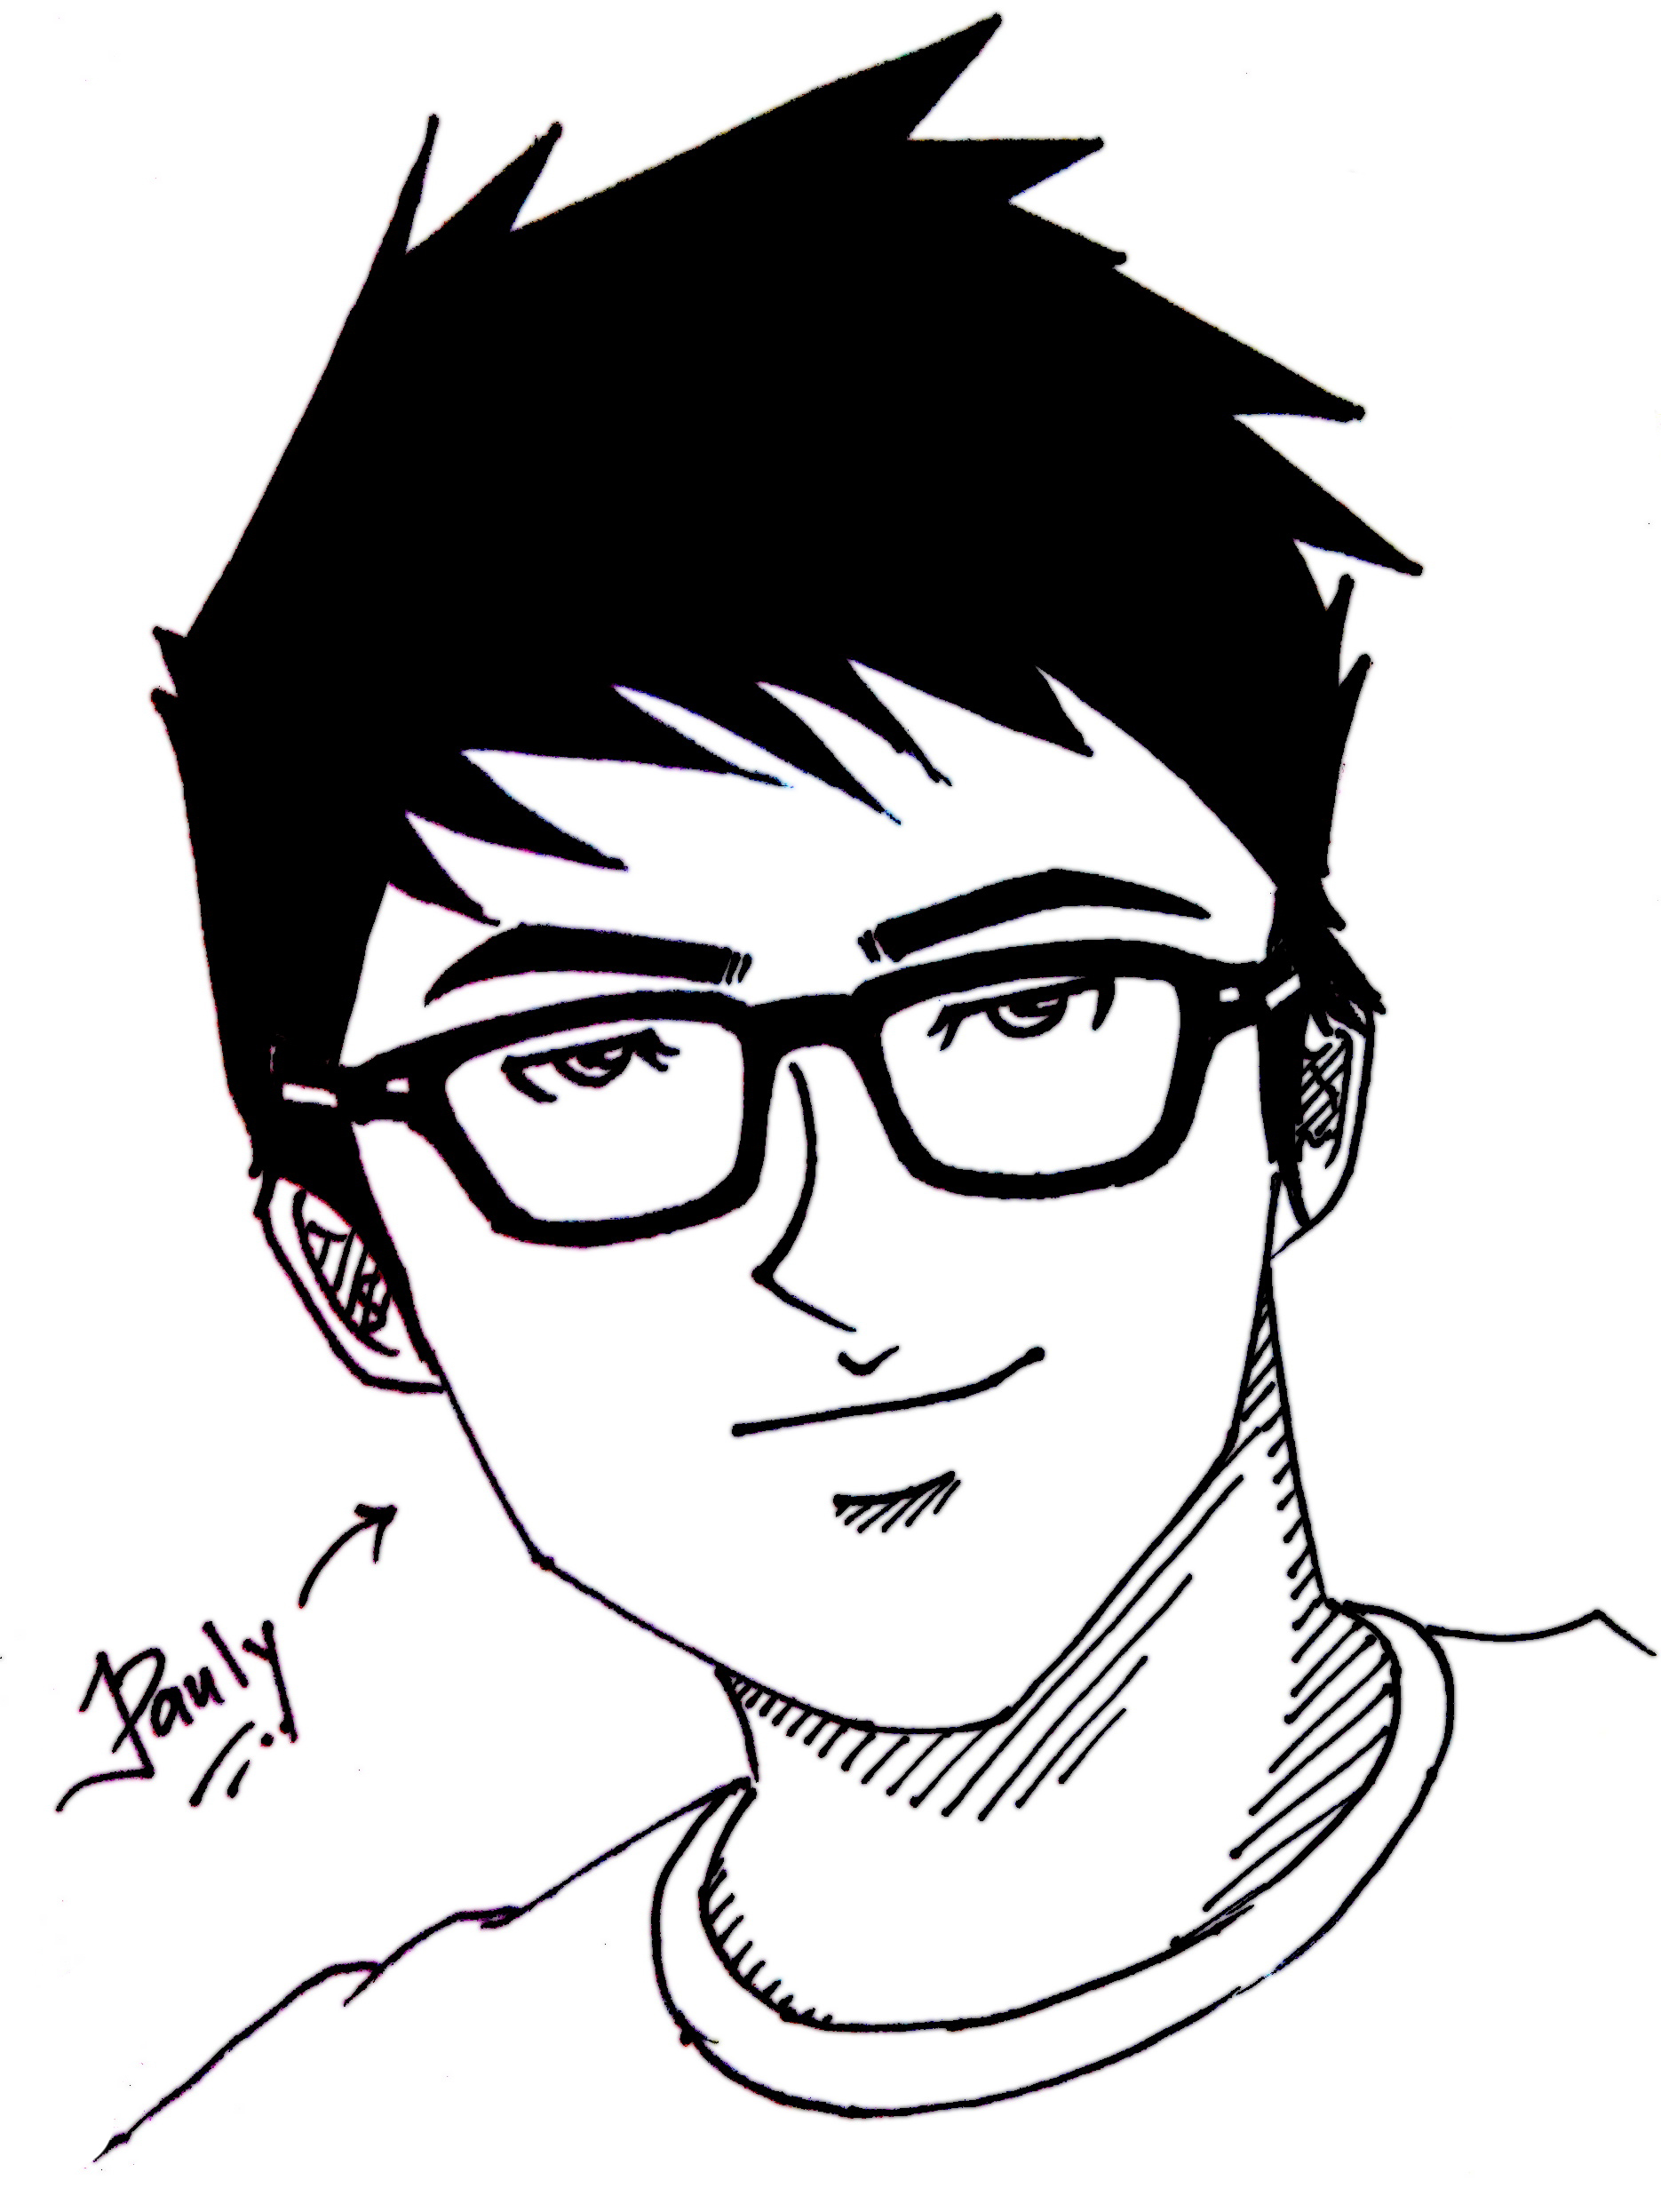 create an anime avatar/caricature of you